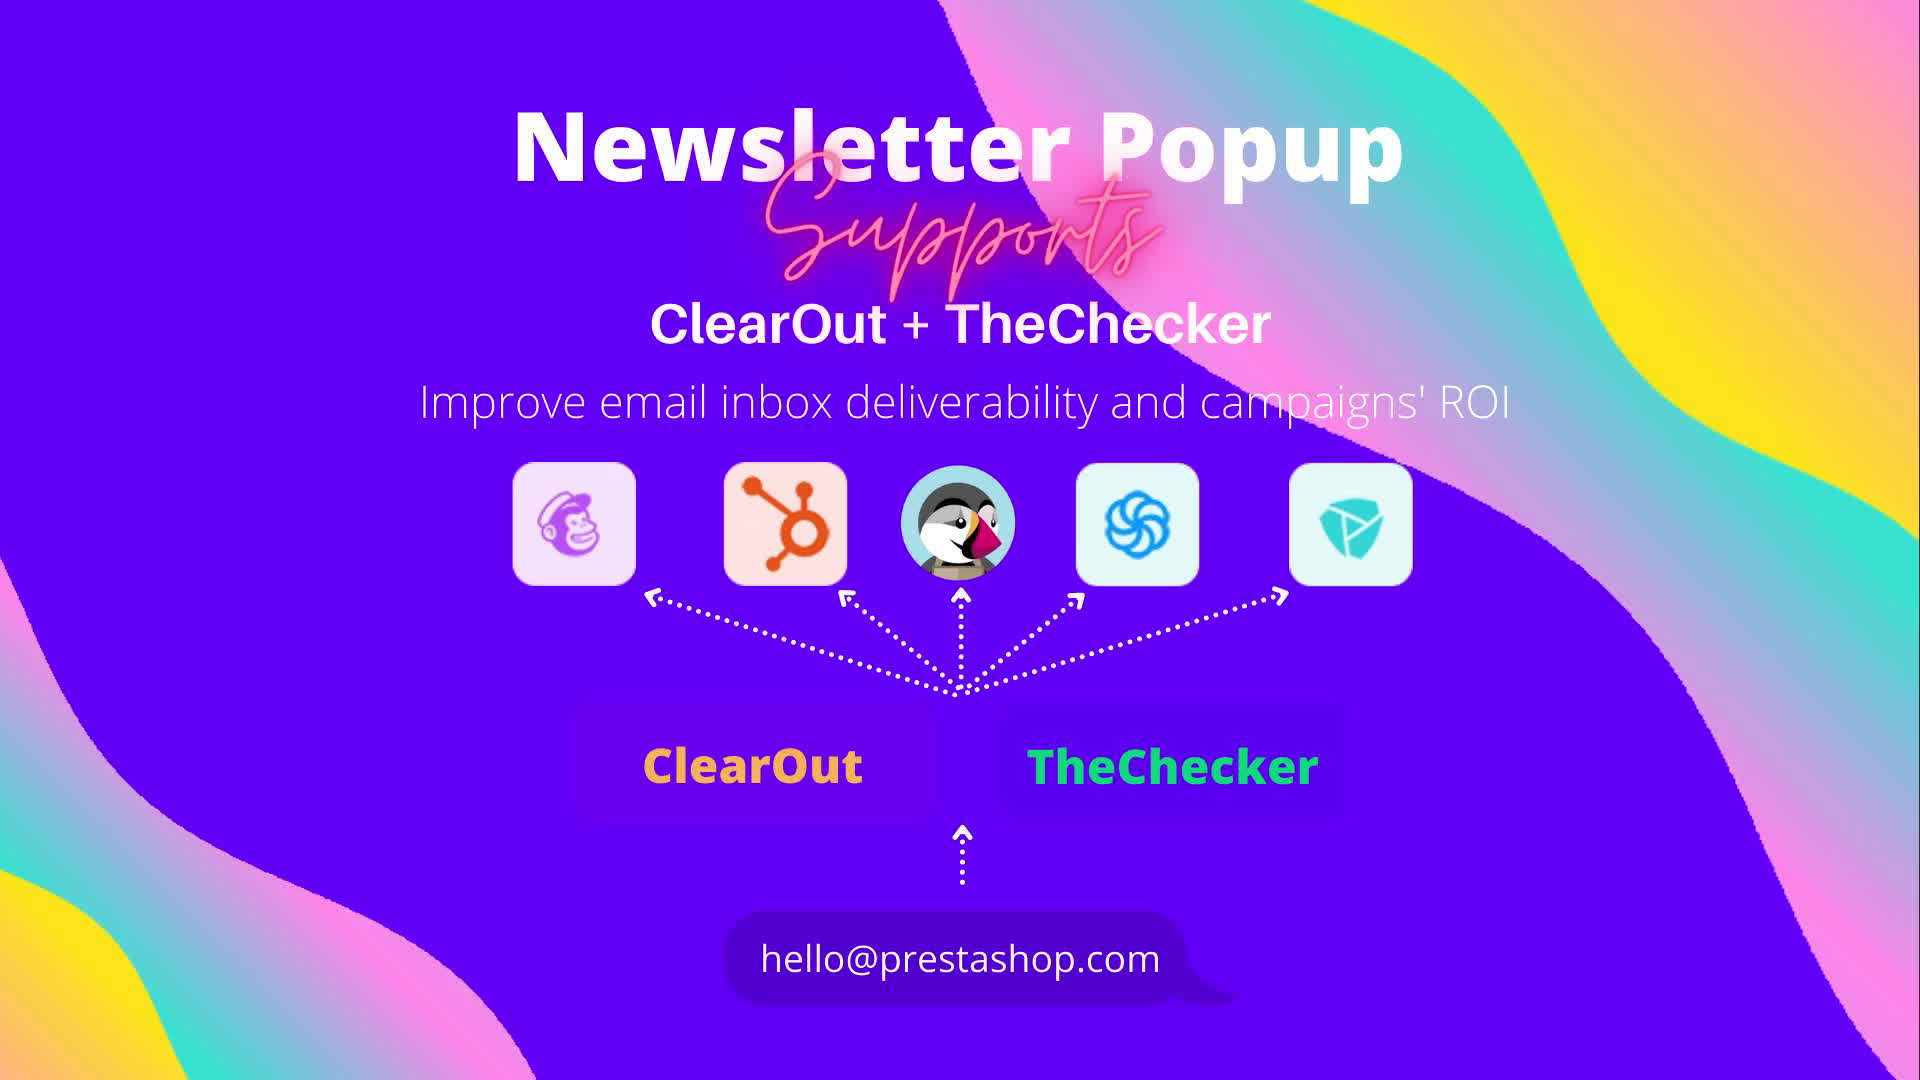 Newsletter Popup supports Clearout + theChecker